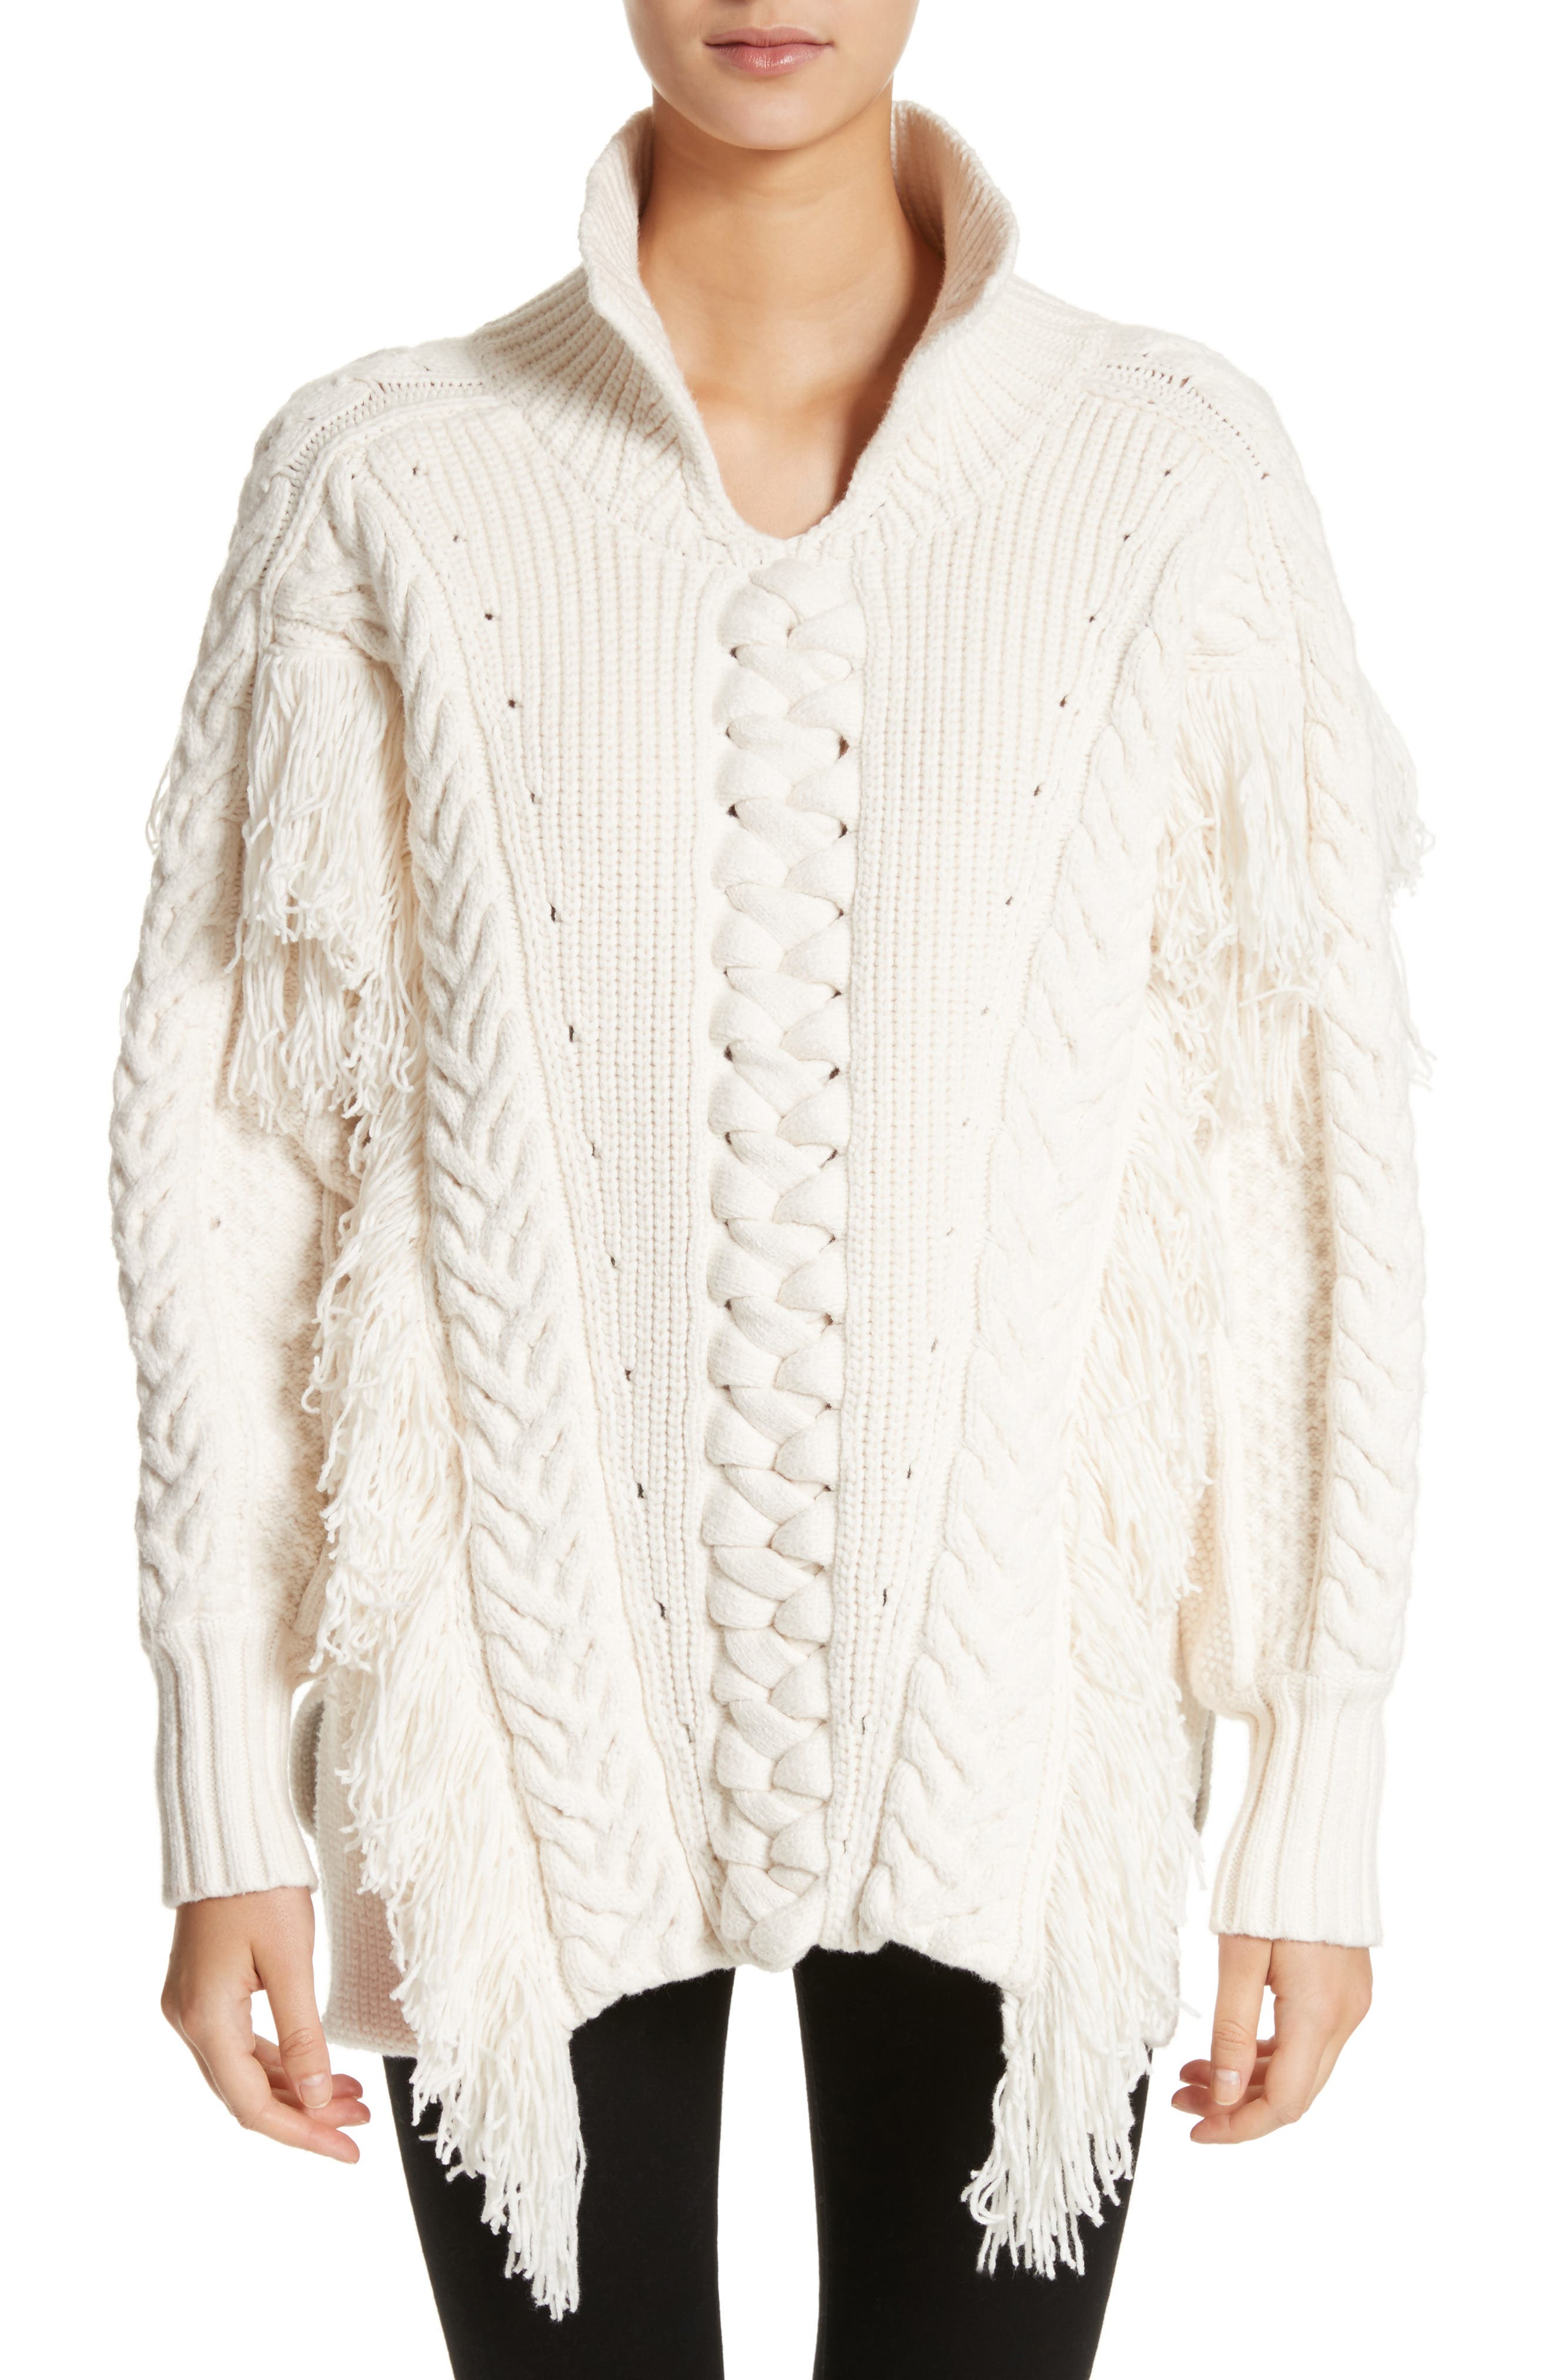 Borbore Fringed Cable Knit Sweater,                             Main thumbnail 1, color,                             103